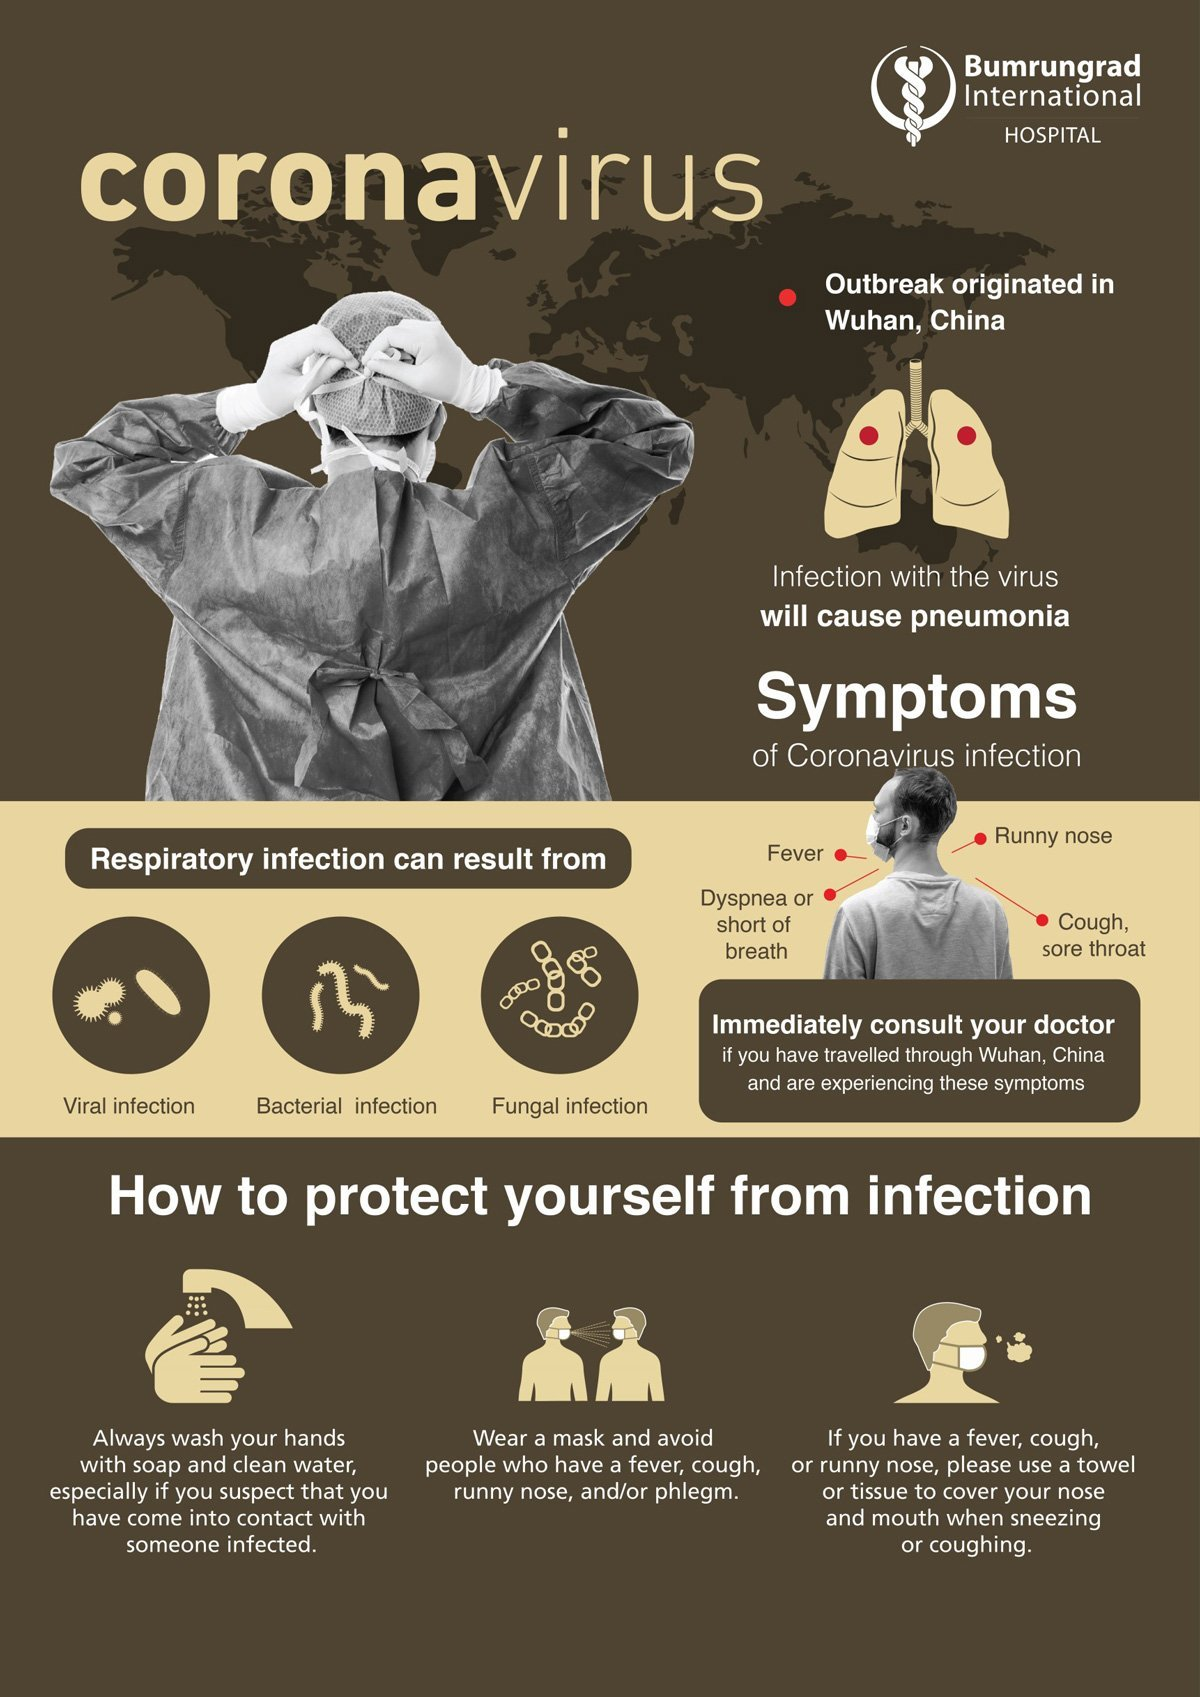 Coronavirus: What You Need to Know Infographic